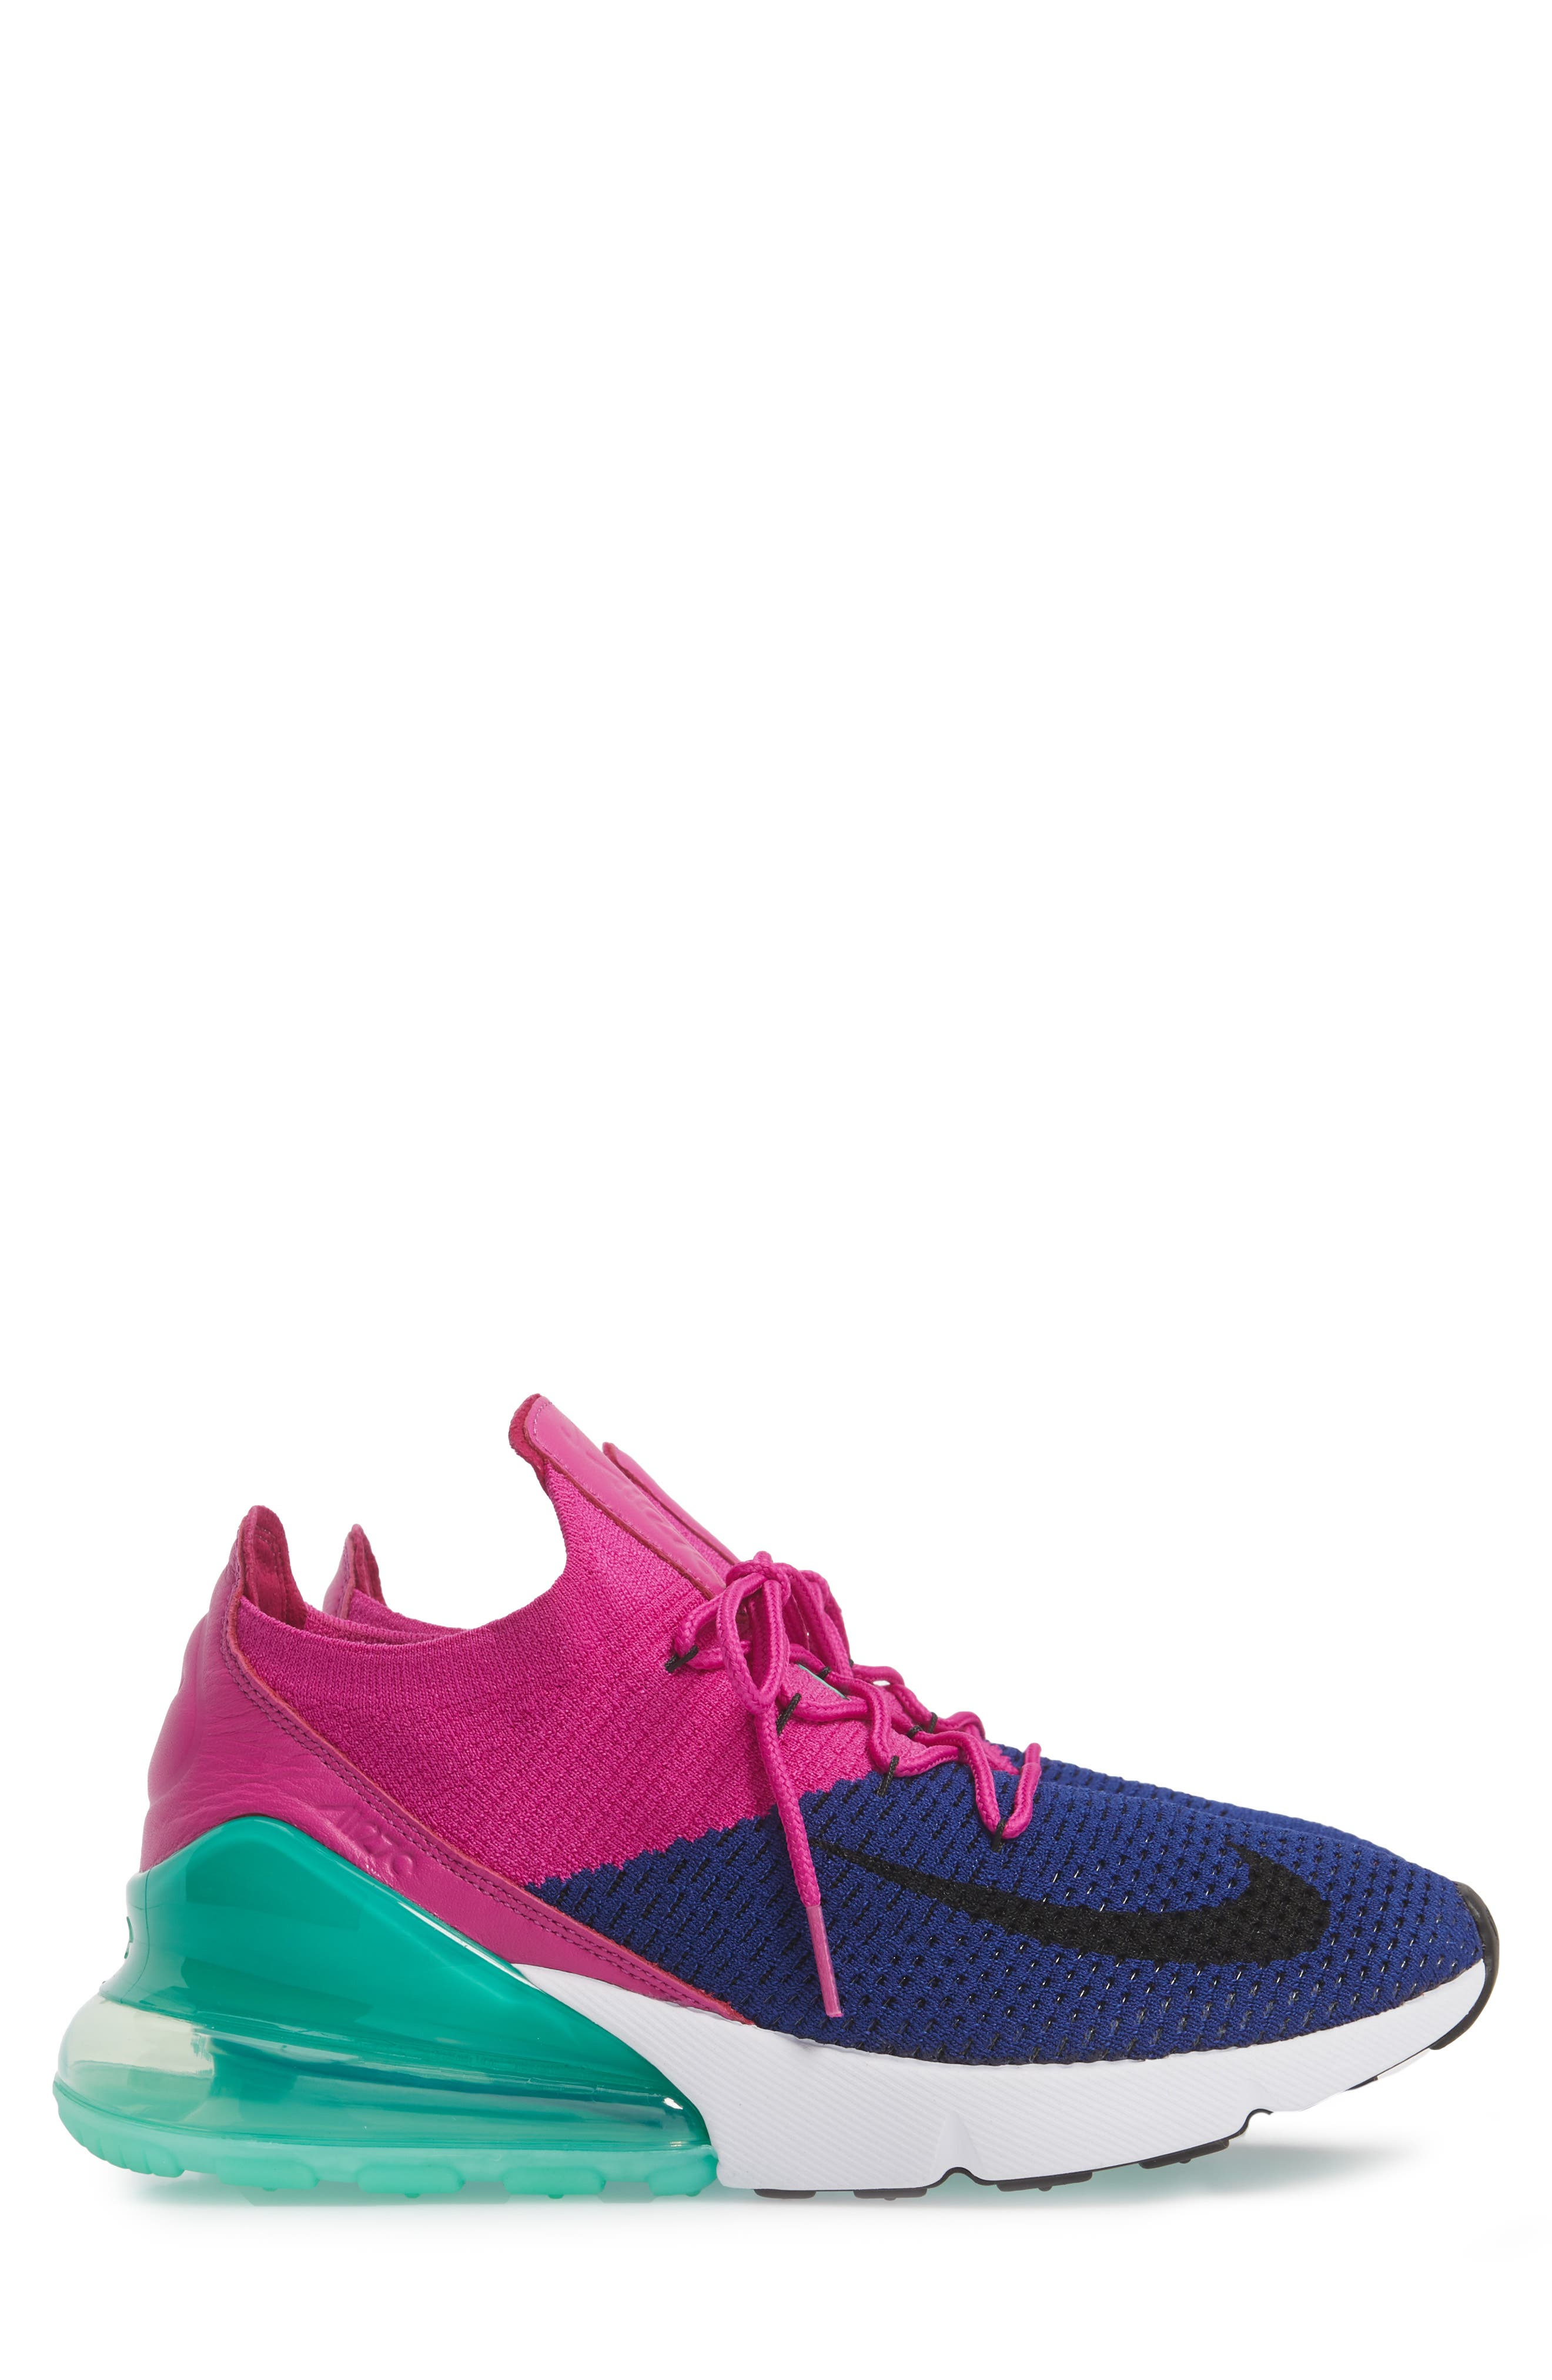 Air Max 270 Flyknit Sneaker,                             Alternate thumbnail 26, color,